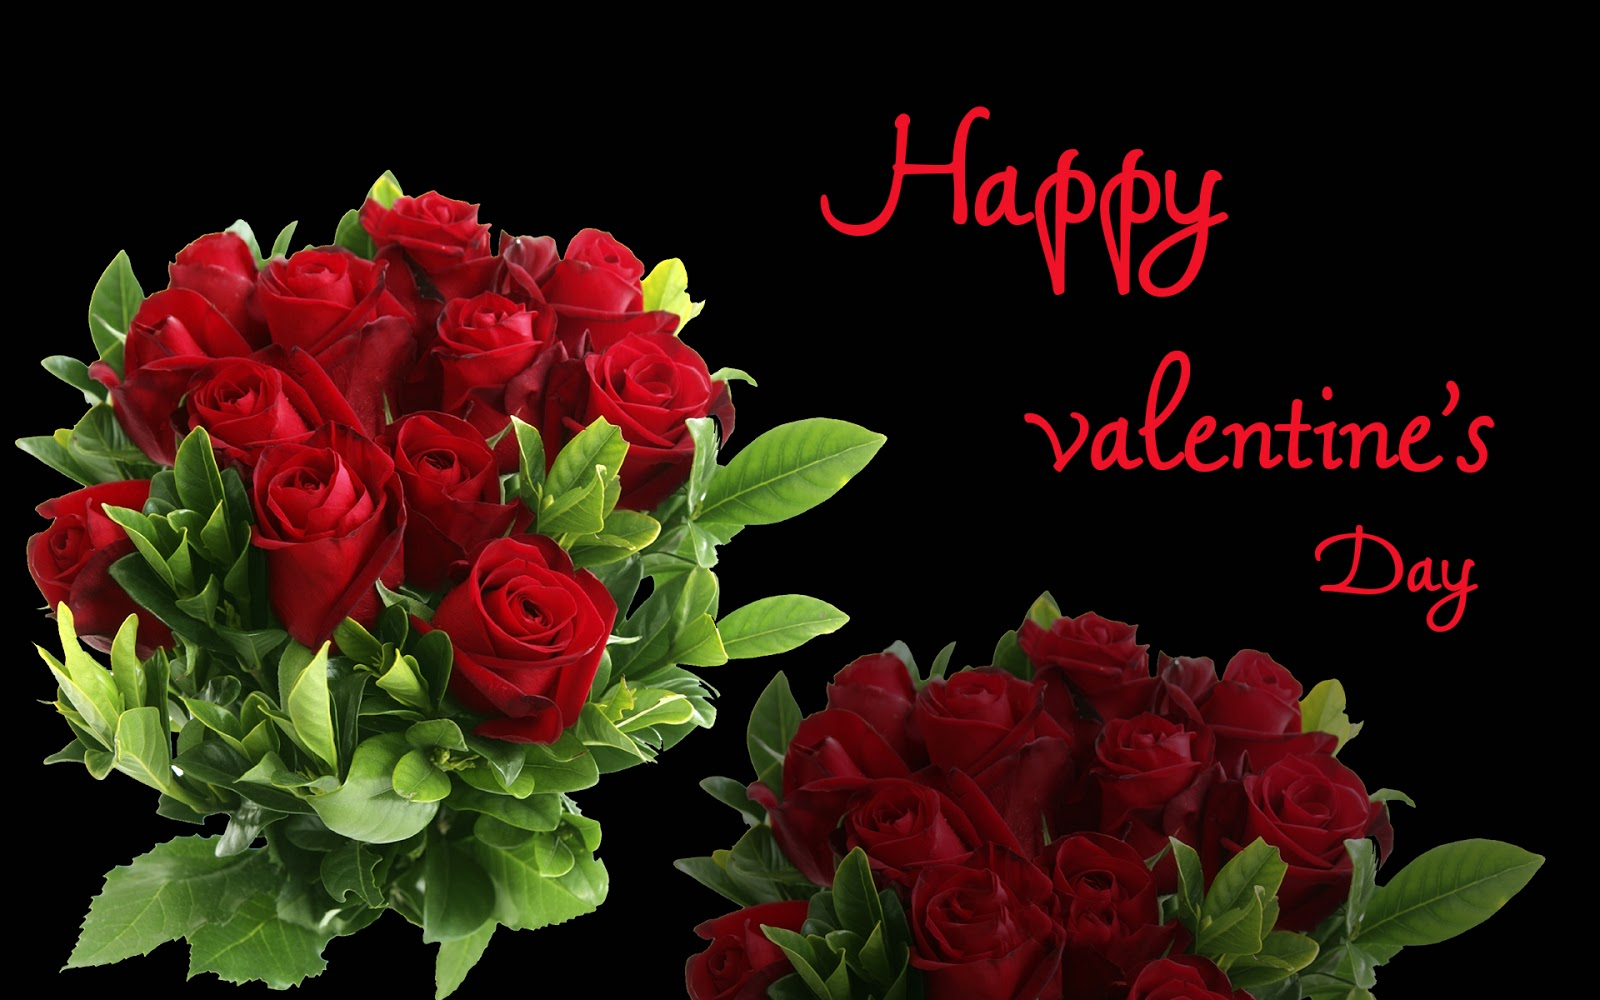 HD Wallpapers Fine: Happy Valentine's Day Greeting Wishes